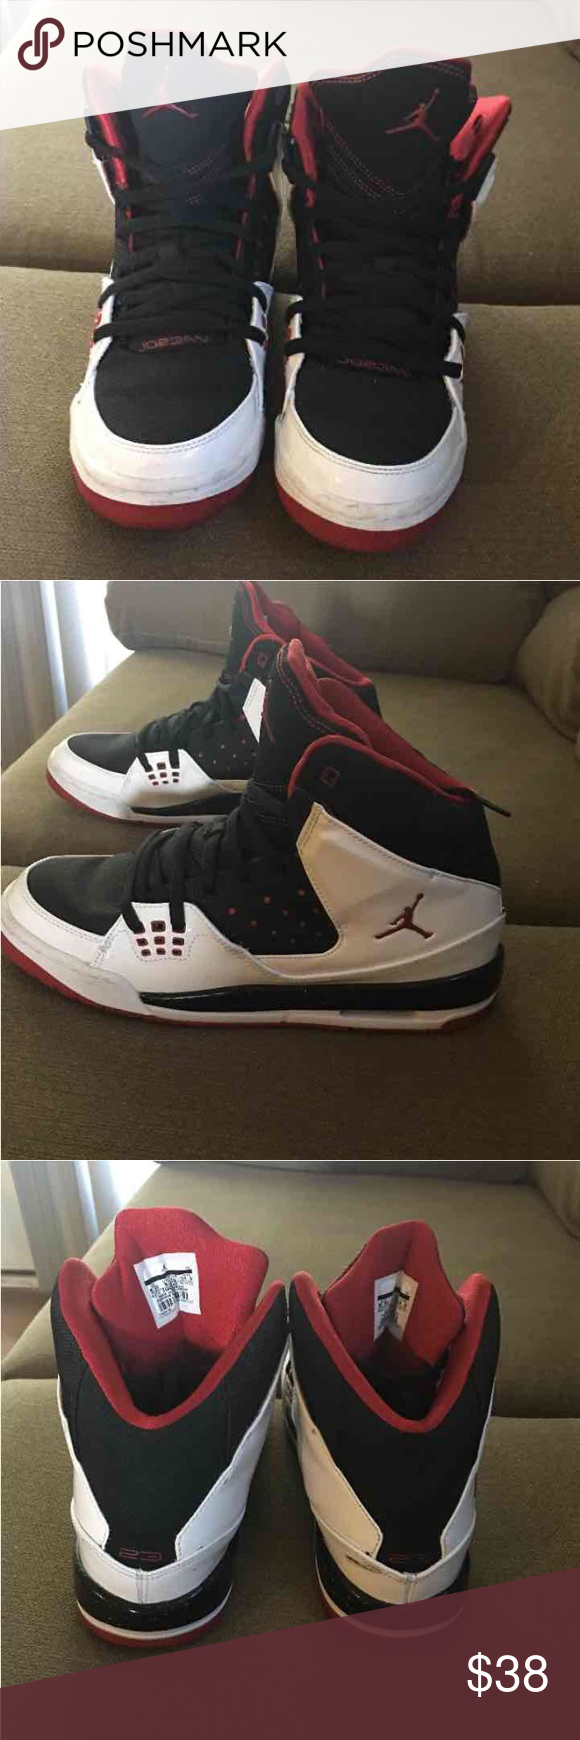 Jordans Bought for my son but he doesn't like them. So I'm selling. Lightly used still in great condition. One of them has a scuff (pictured) I'll try and get it off, they'll be cleaned regardless before I sell! Grade school boys size 6.5 Jordans Shoes Sneakers